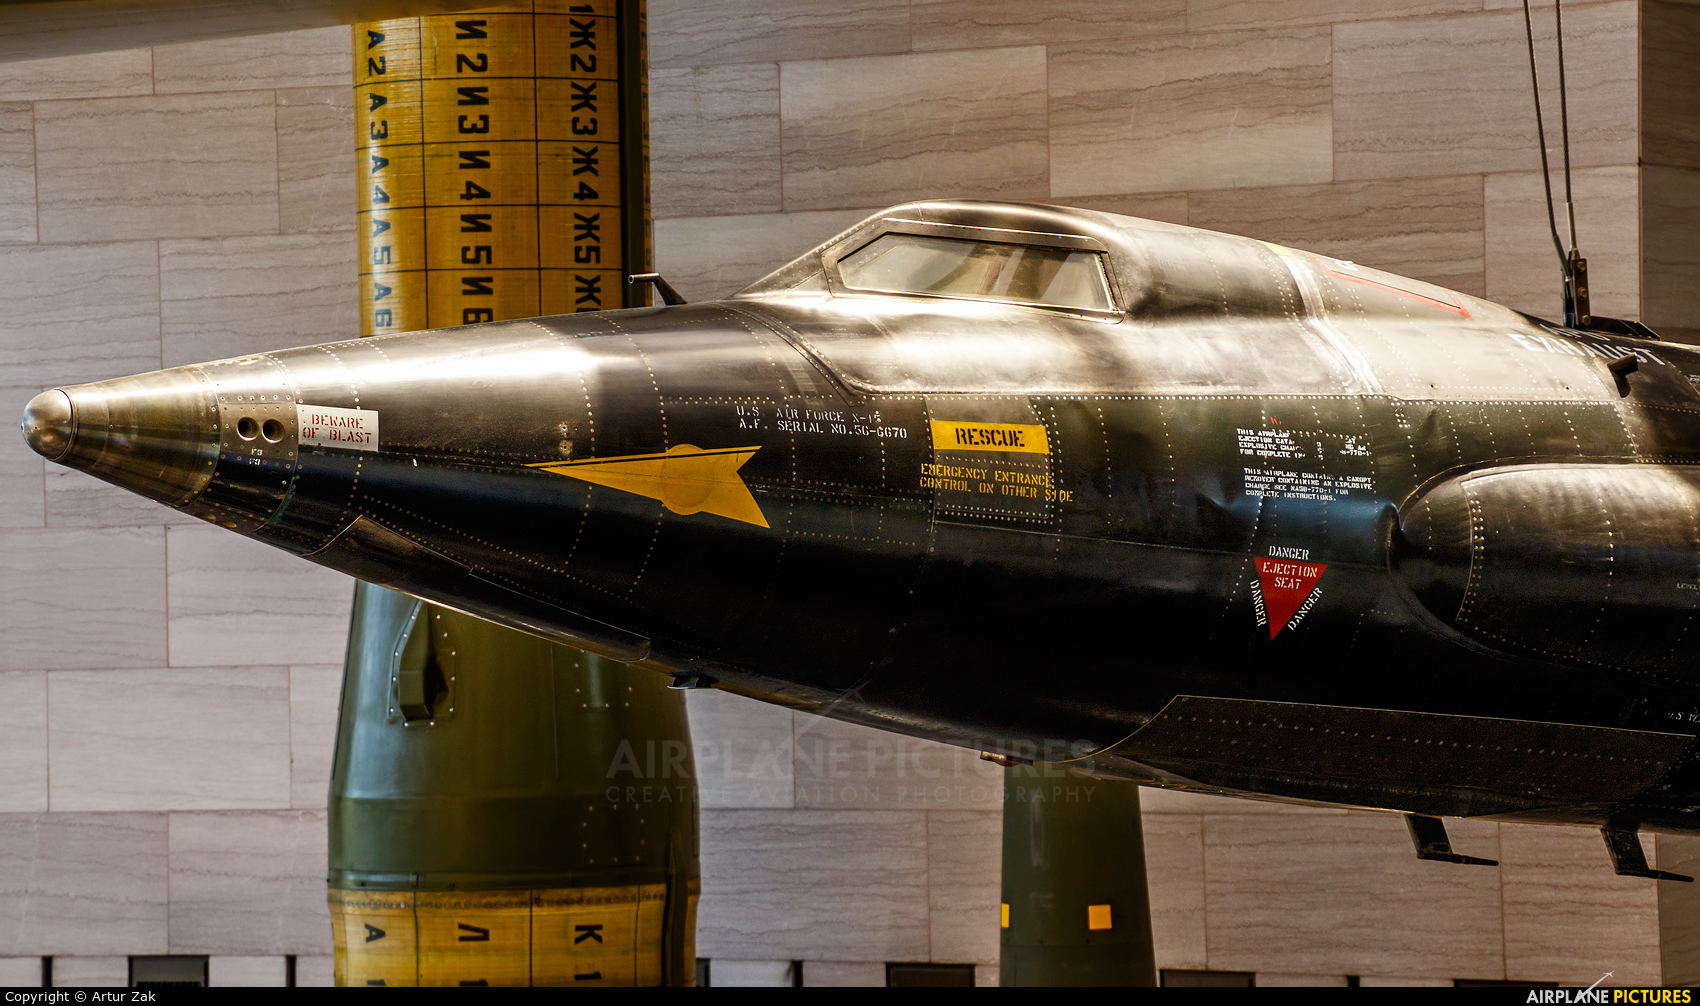 USA - Air Force 56-6670 aircraft at Smithsonian National Air and Space Museum